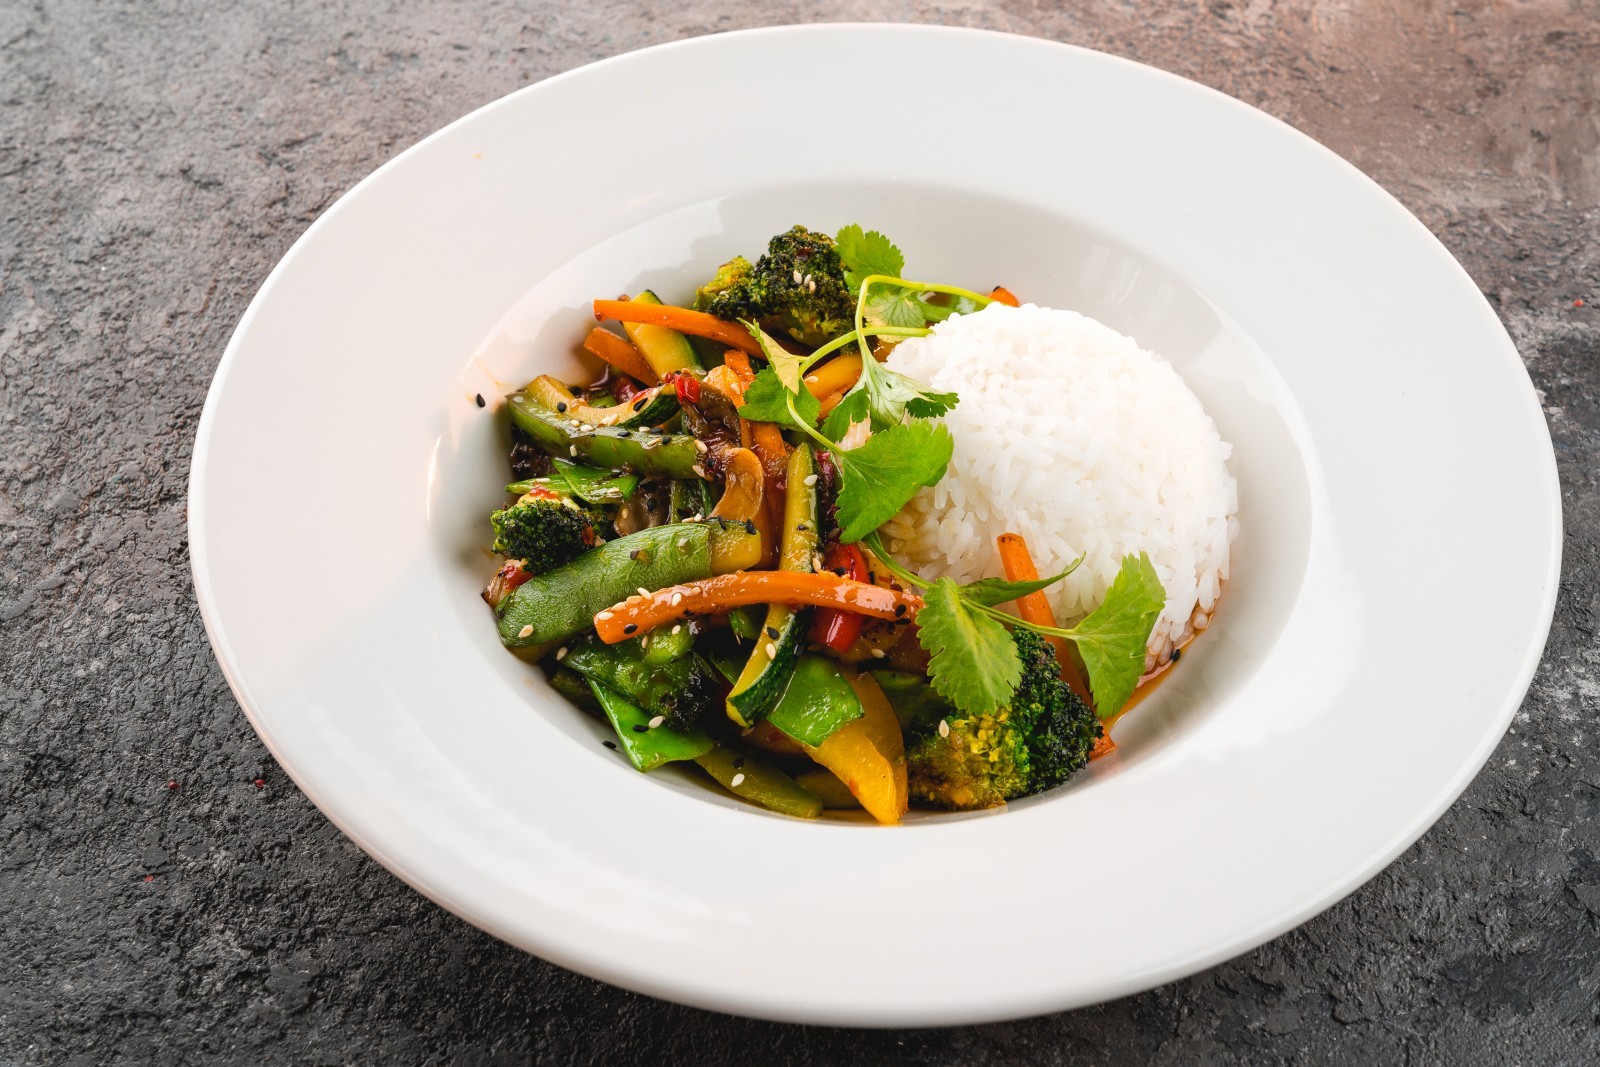 Thay-style vegetables